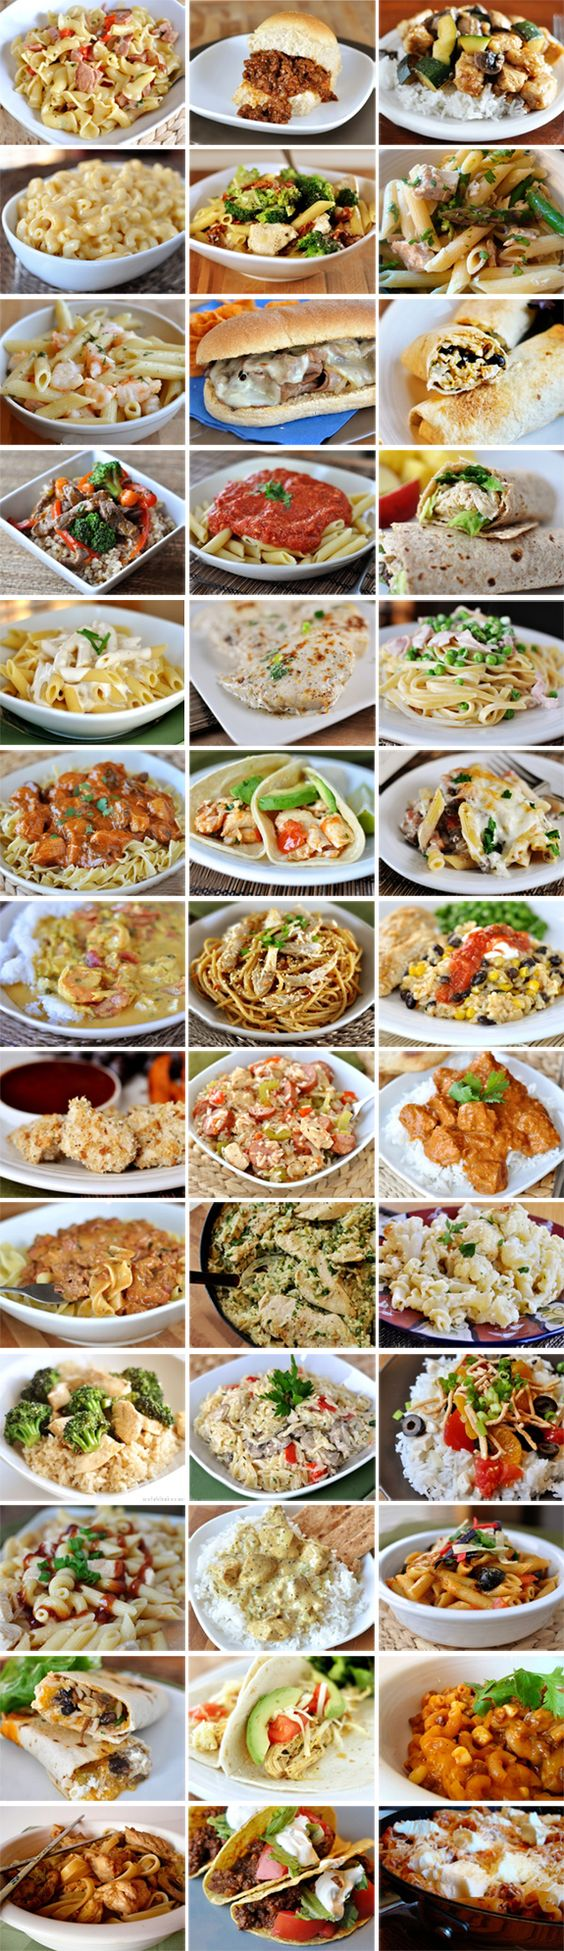 Mel's Kitchen Cafe —30 meals to make in 30 minutes or less